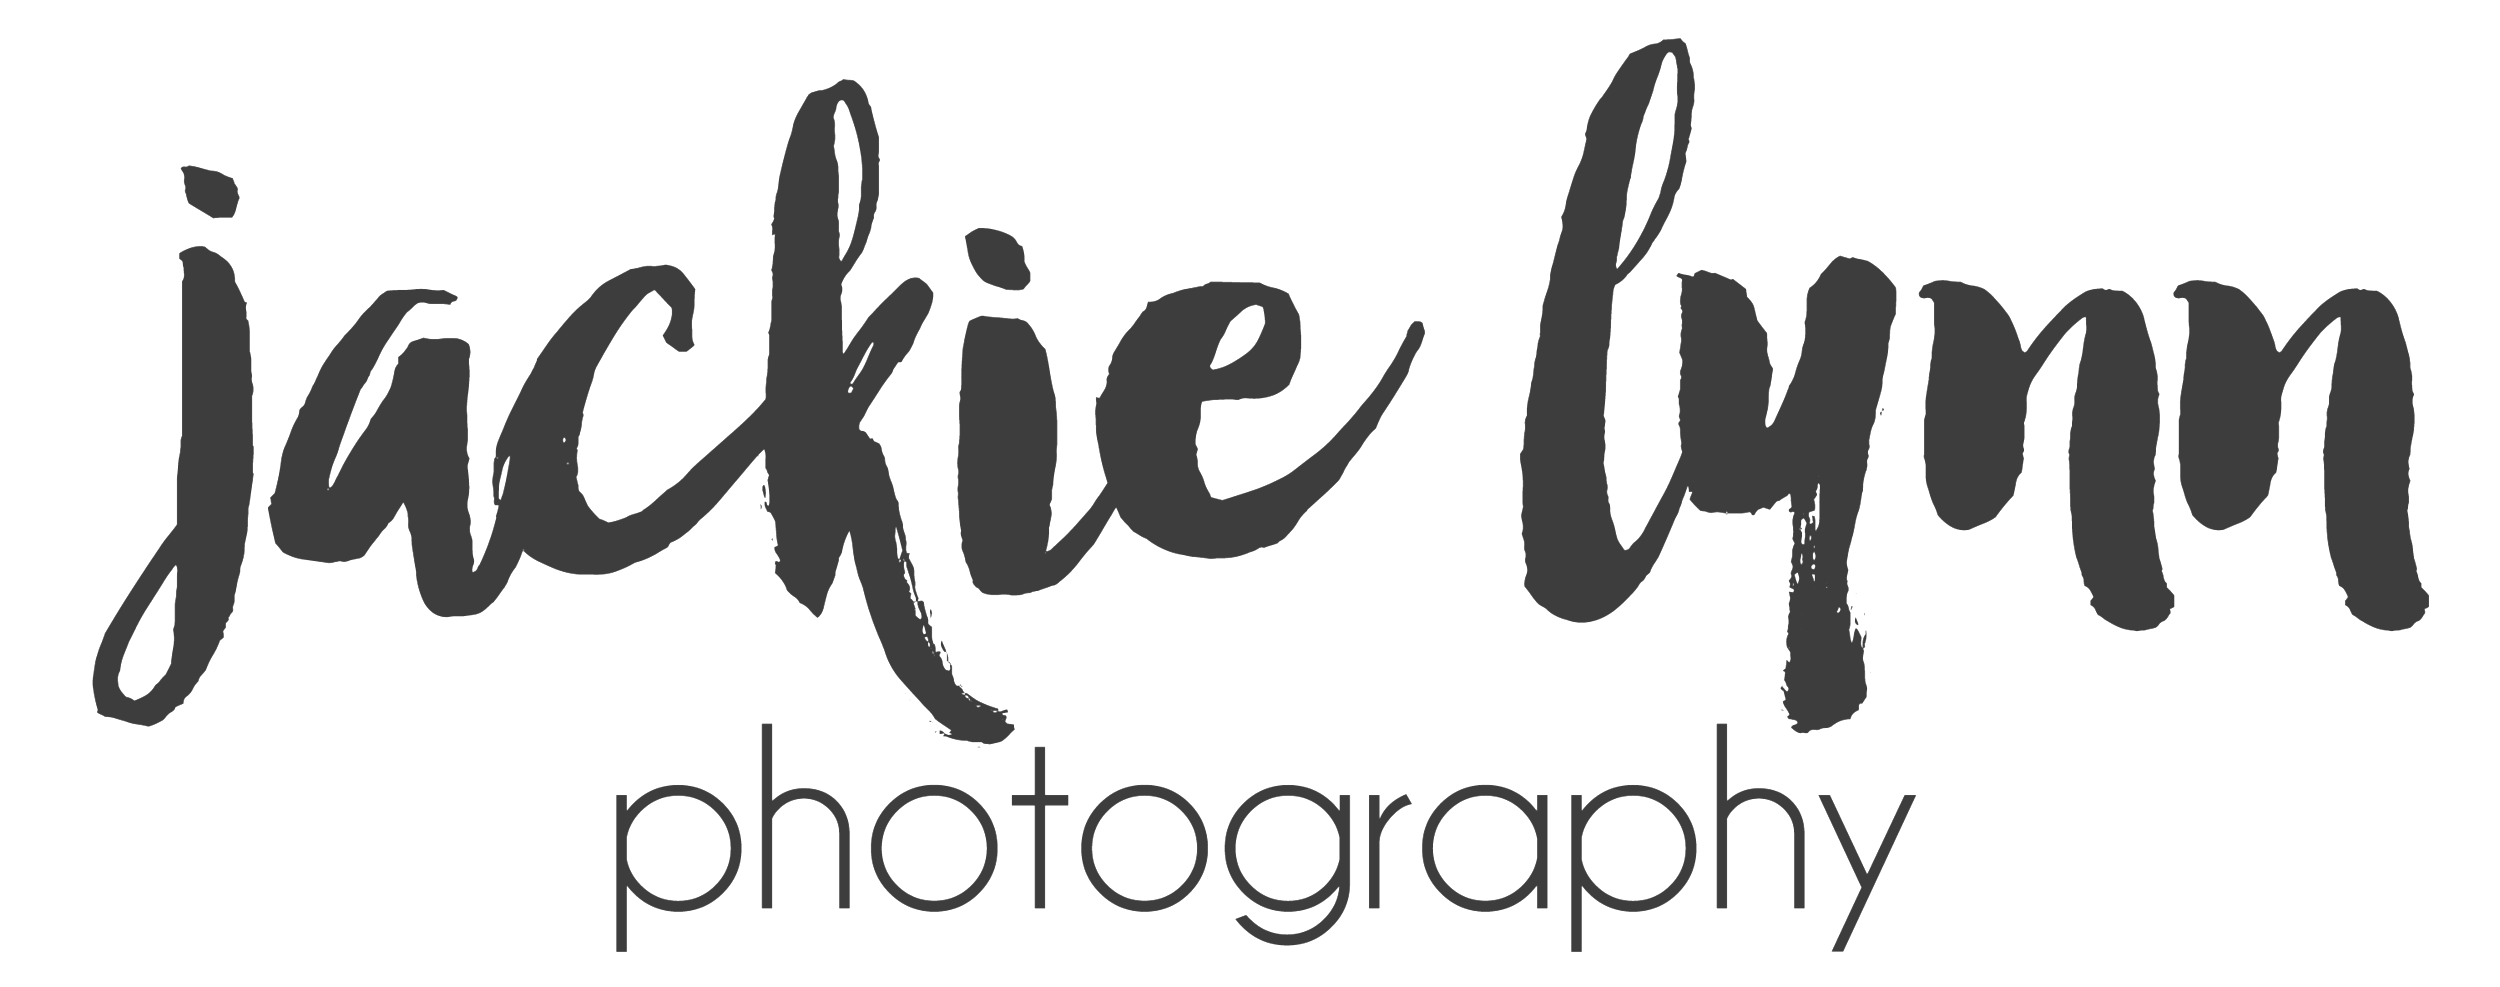 Jackie Lynn Photography Logo.png